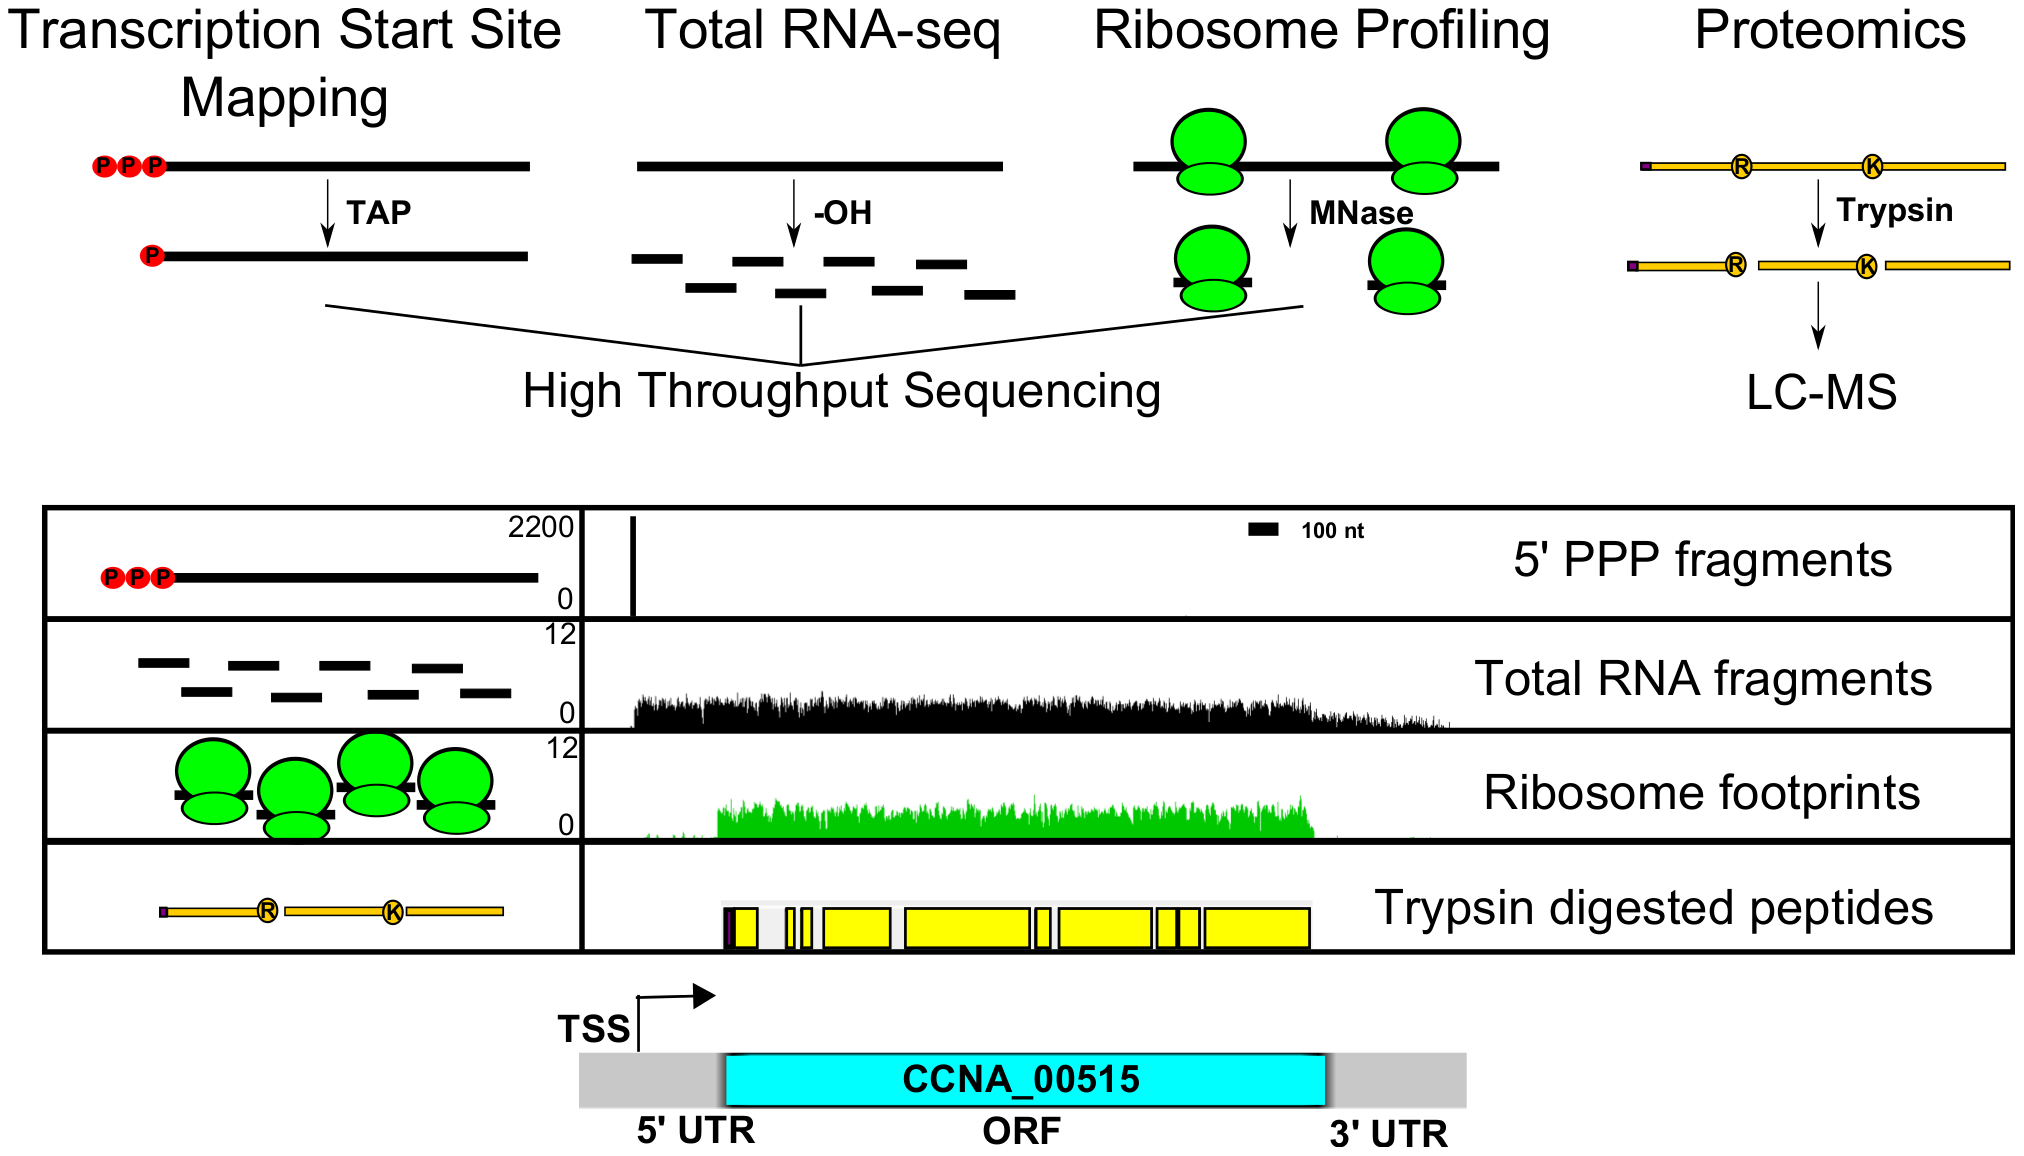 Genome-wide data set integration to map the genetic elements in the <i>C. crescentus</i> genome.